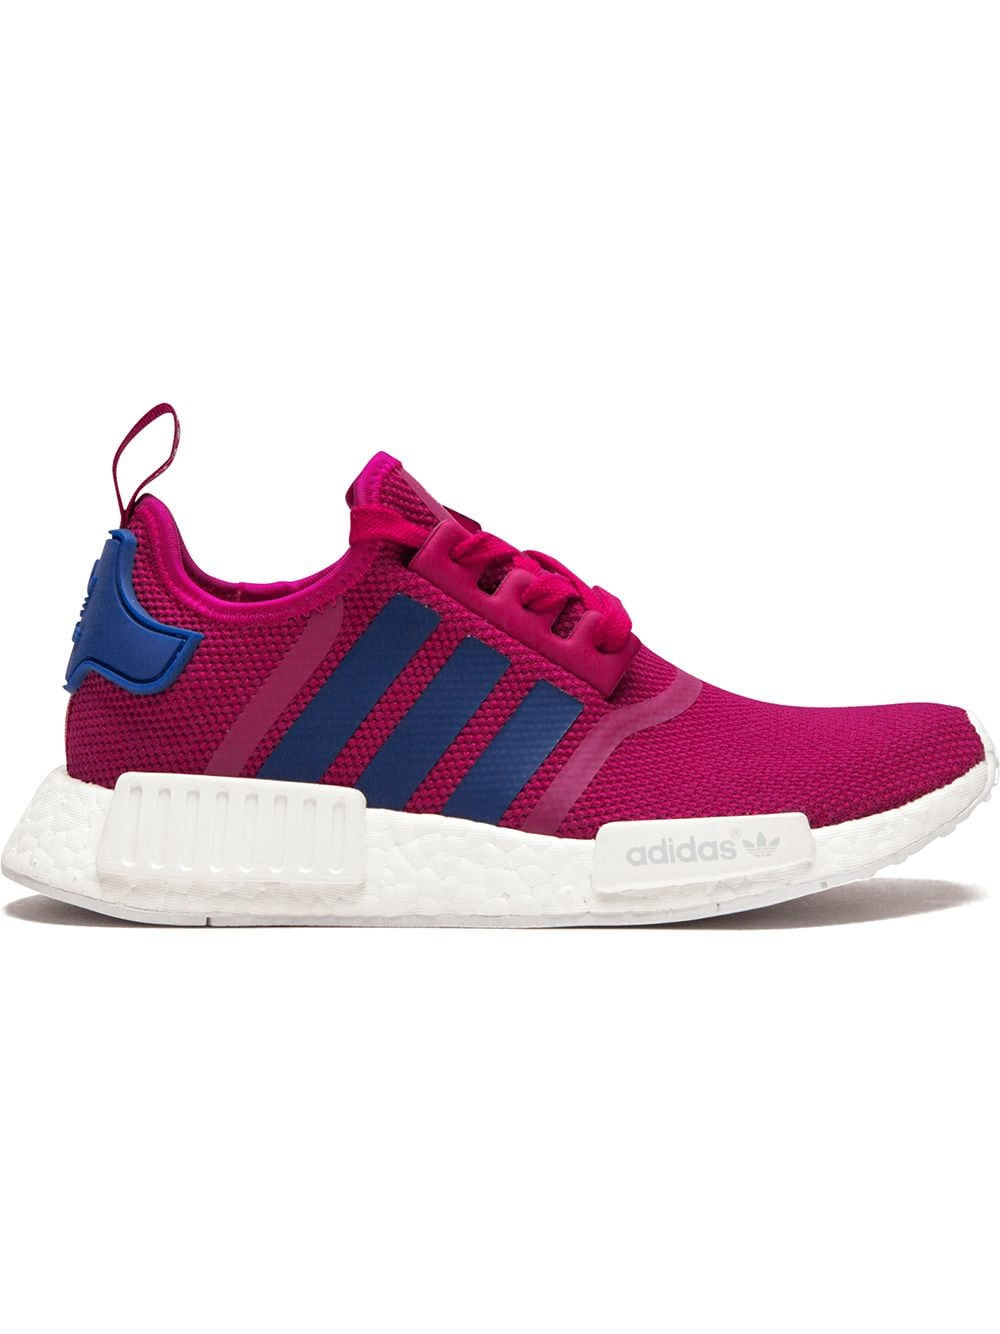 adidas NMD sneakers - PINK von adidas